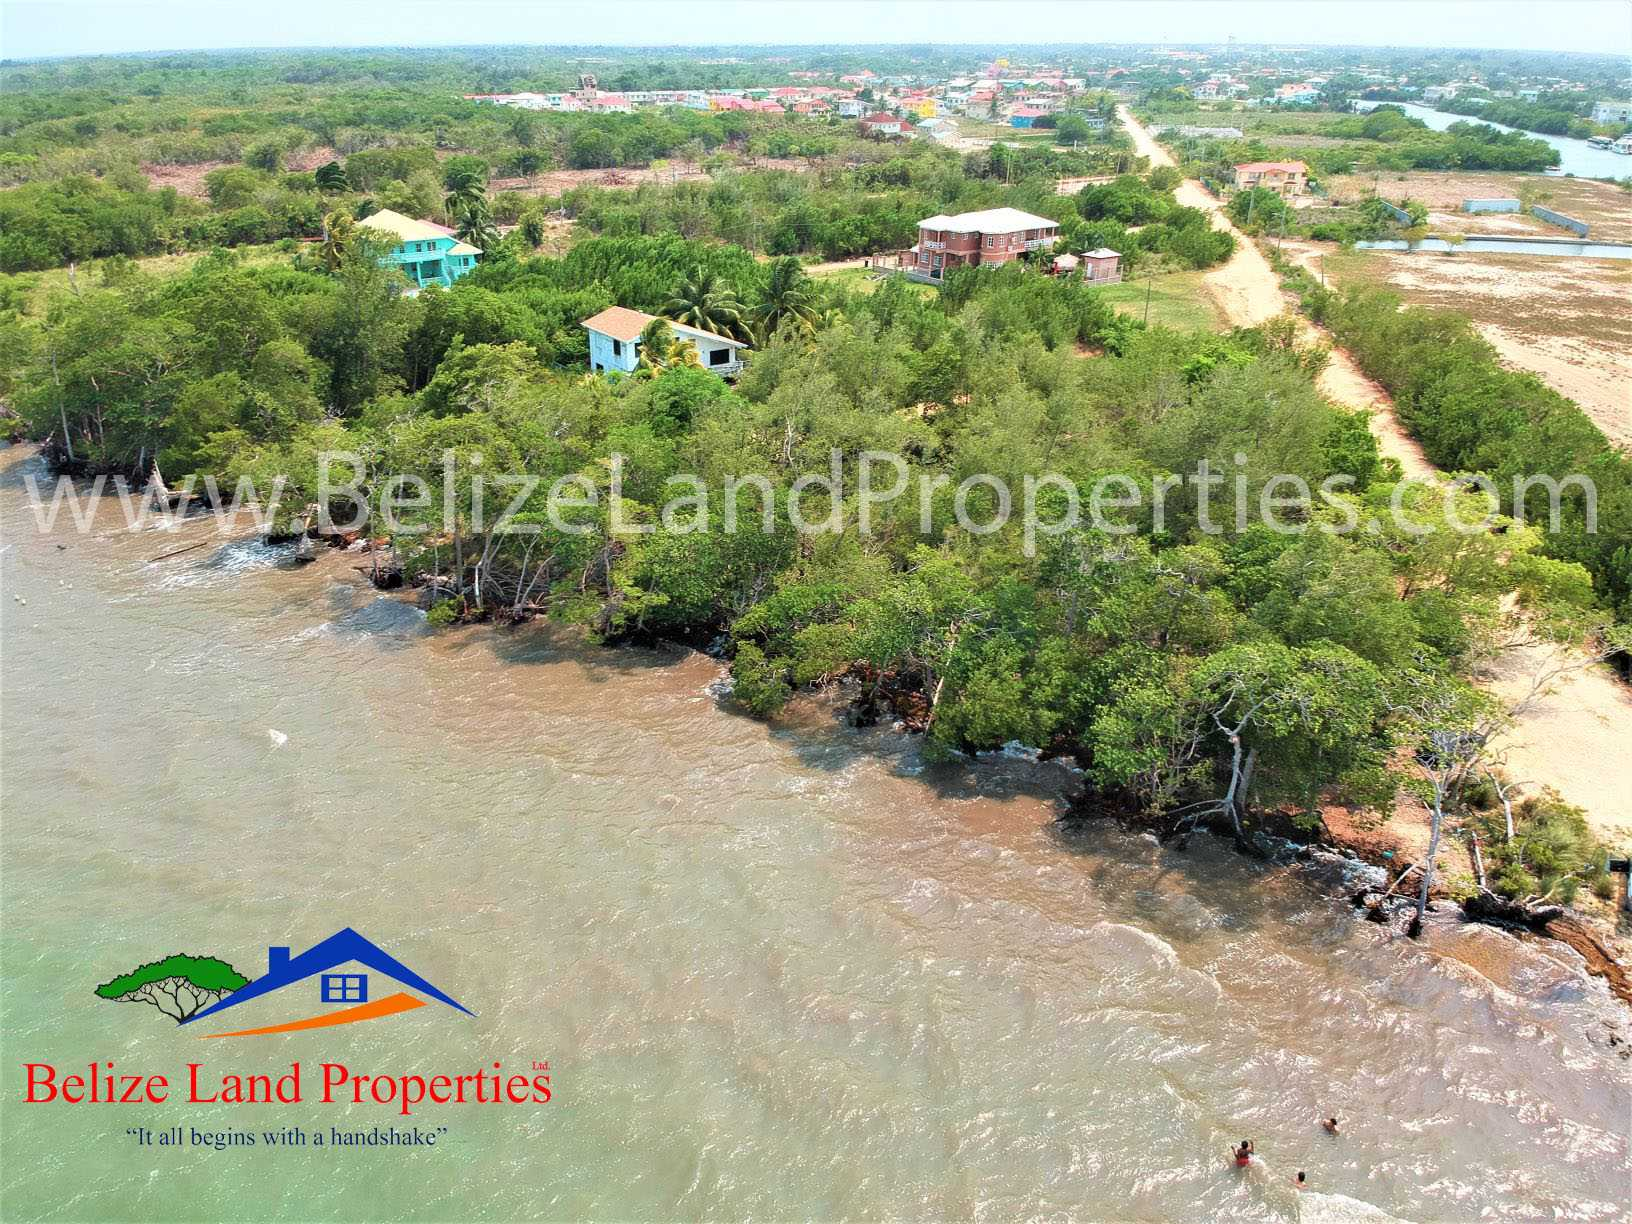 BZ155: 0.7 Acre Seafront in Vista Del Mar For Sale, Belize!